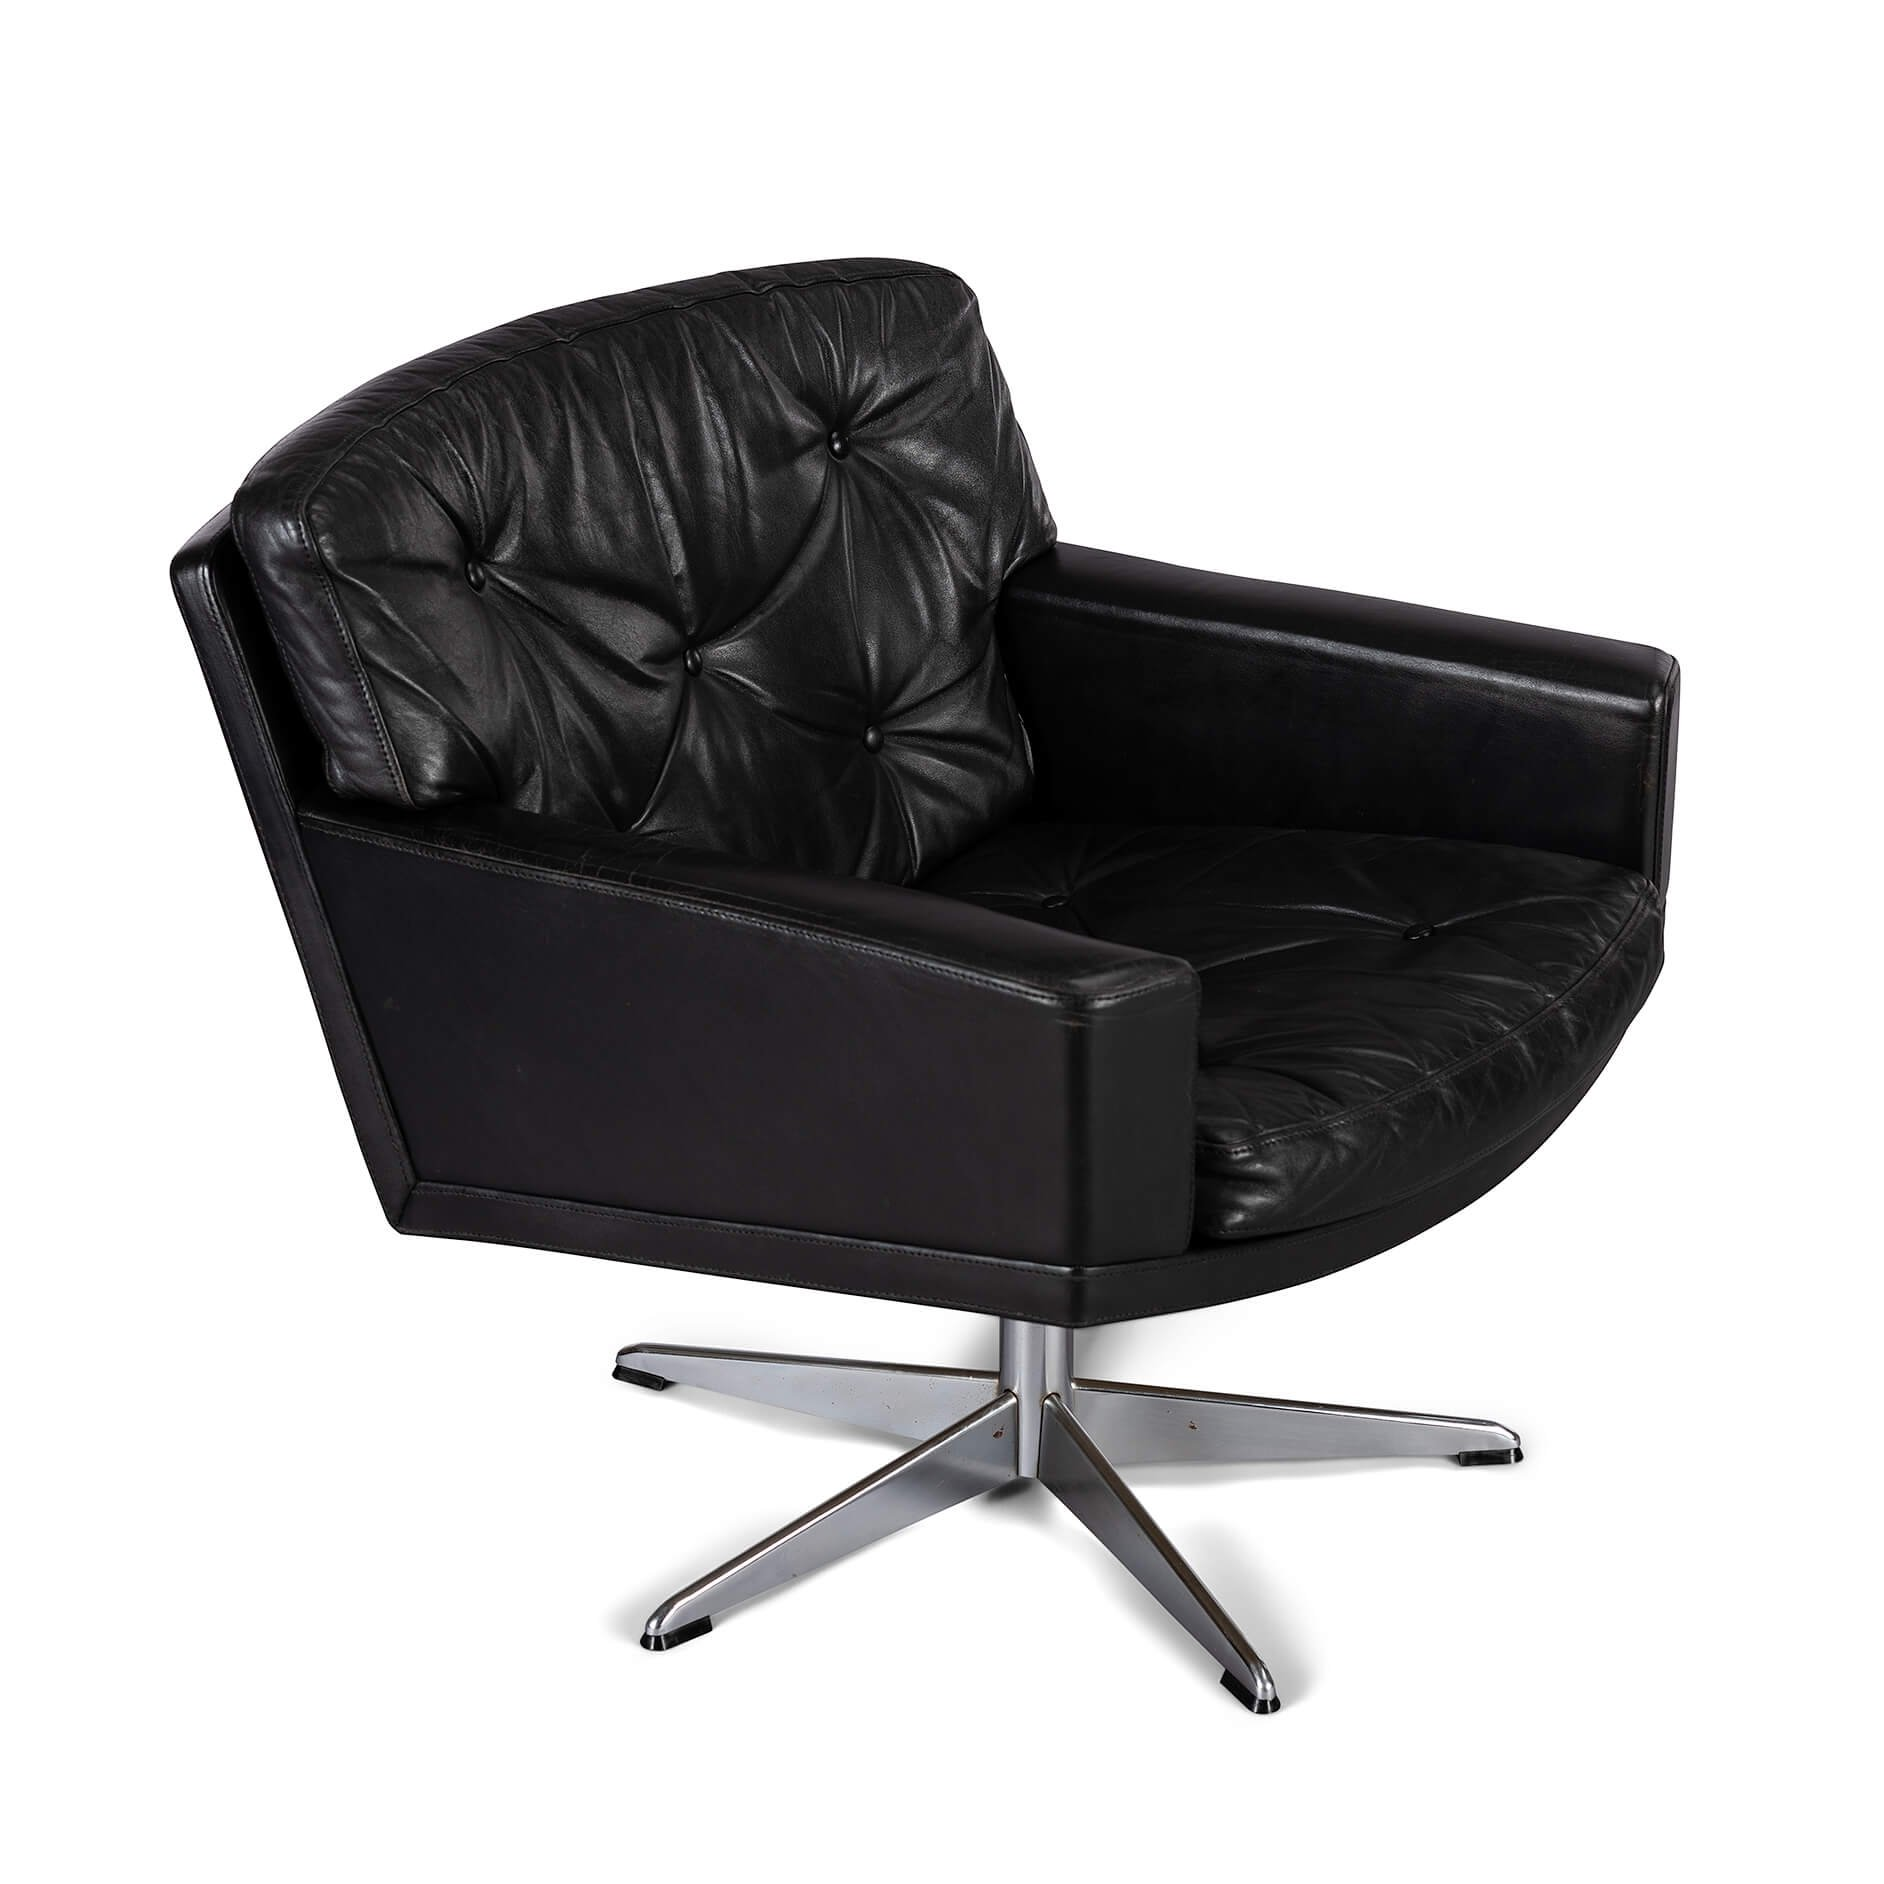 Image of: Black Leather Midcentury Modern Swivel Chair By Lystager 1960s 124125